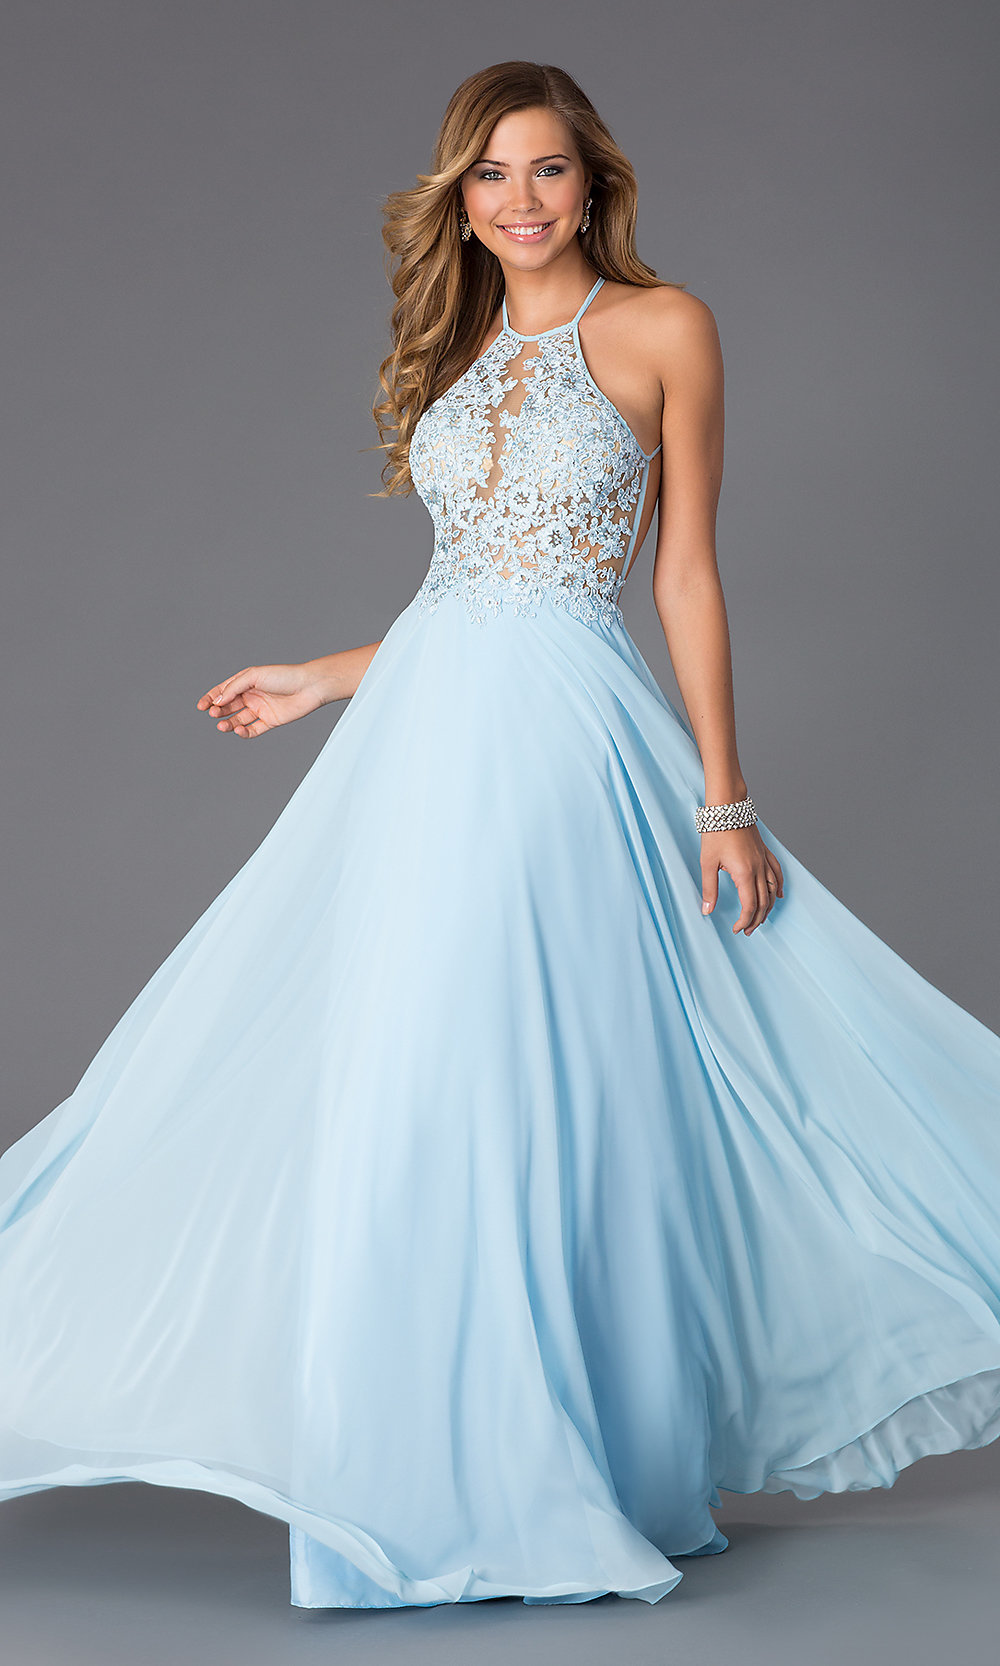 Long lace prom dresses